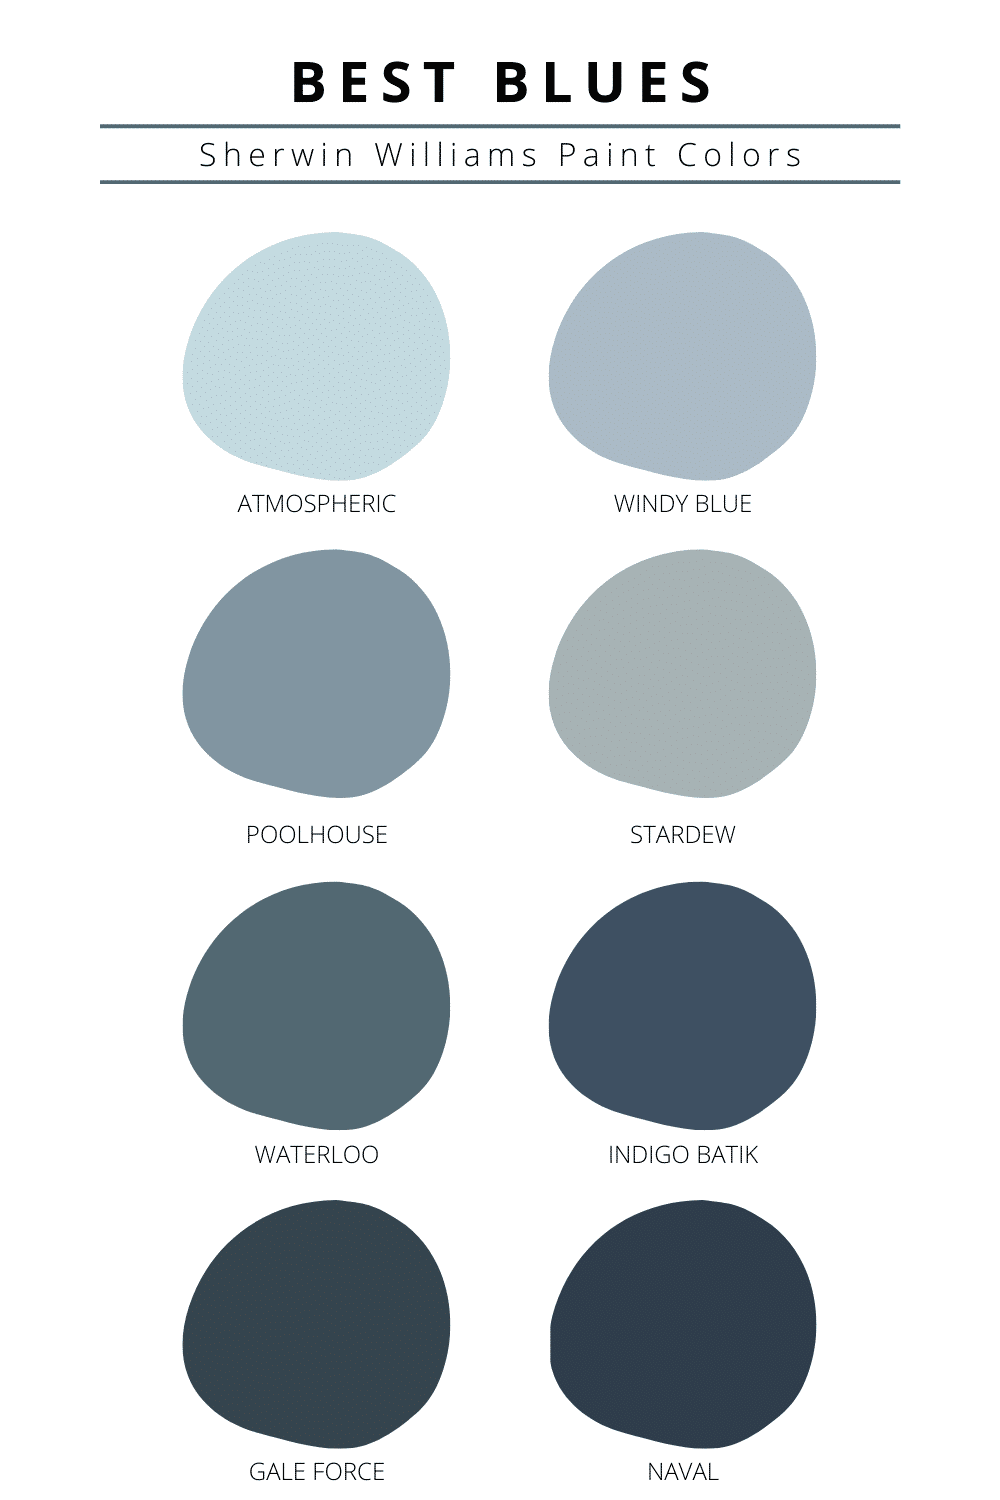 Best Sherwin Williams Blue Paint Colors Of 2020 Stampinfool Com